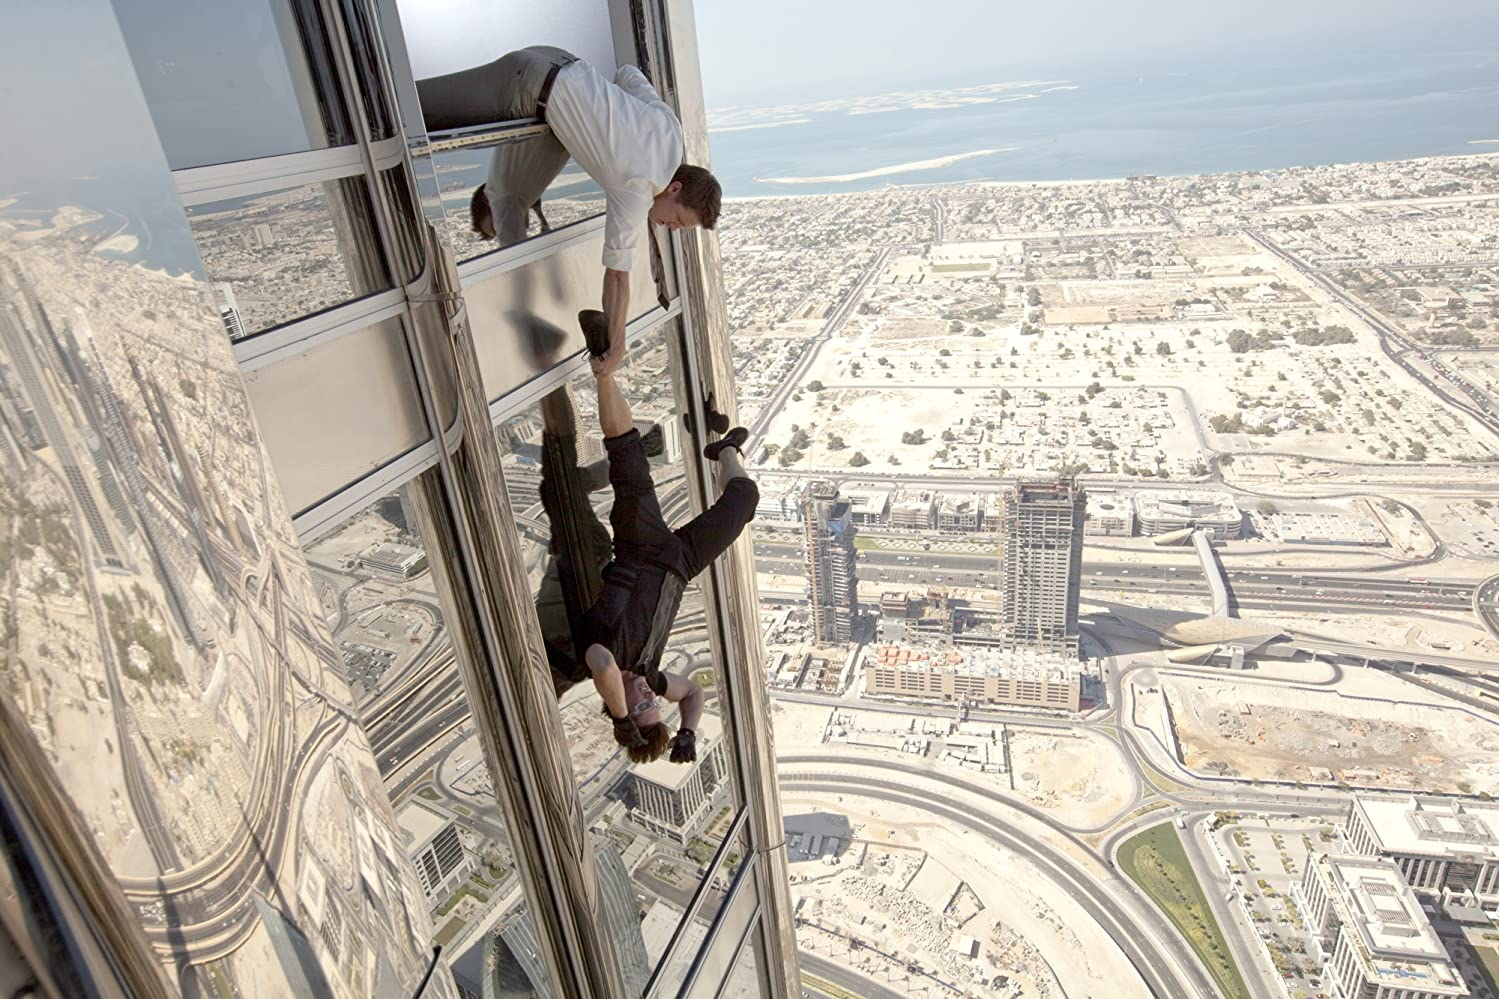 Hoe verliep de samenwerking tussen Tom Cruise, Brad Bird en J.J. Abrams? Daar kom je achter in de Mission: Impossible - Ghost Protocol review